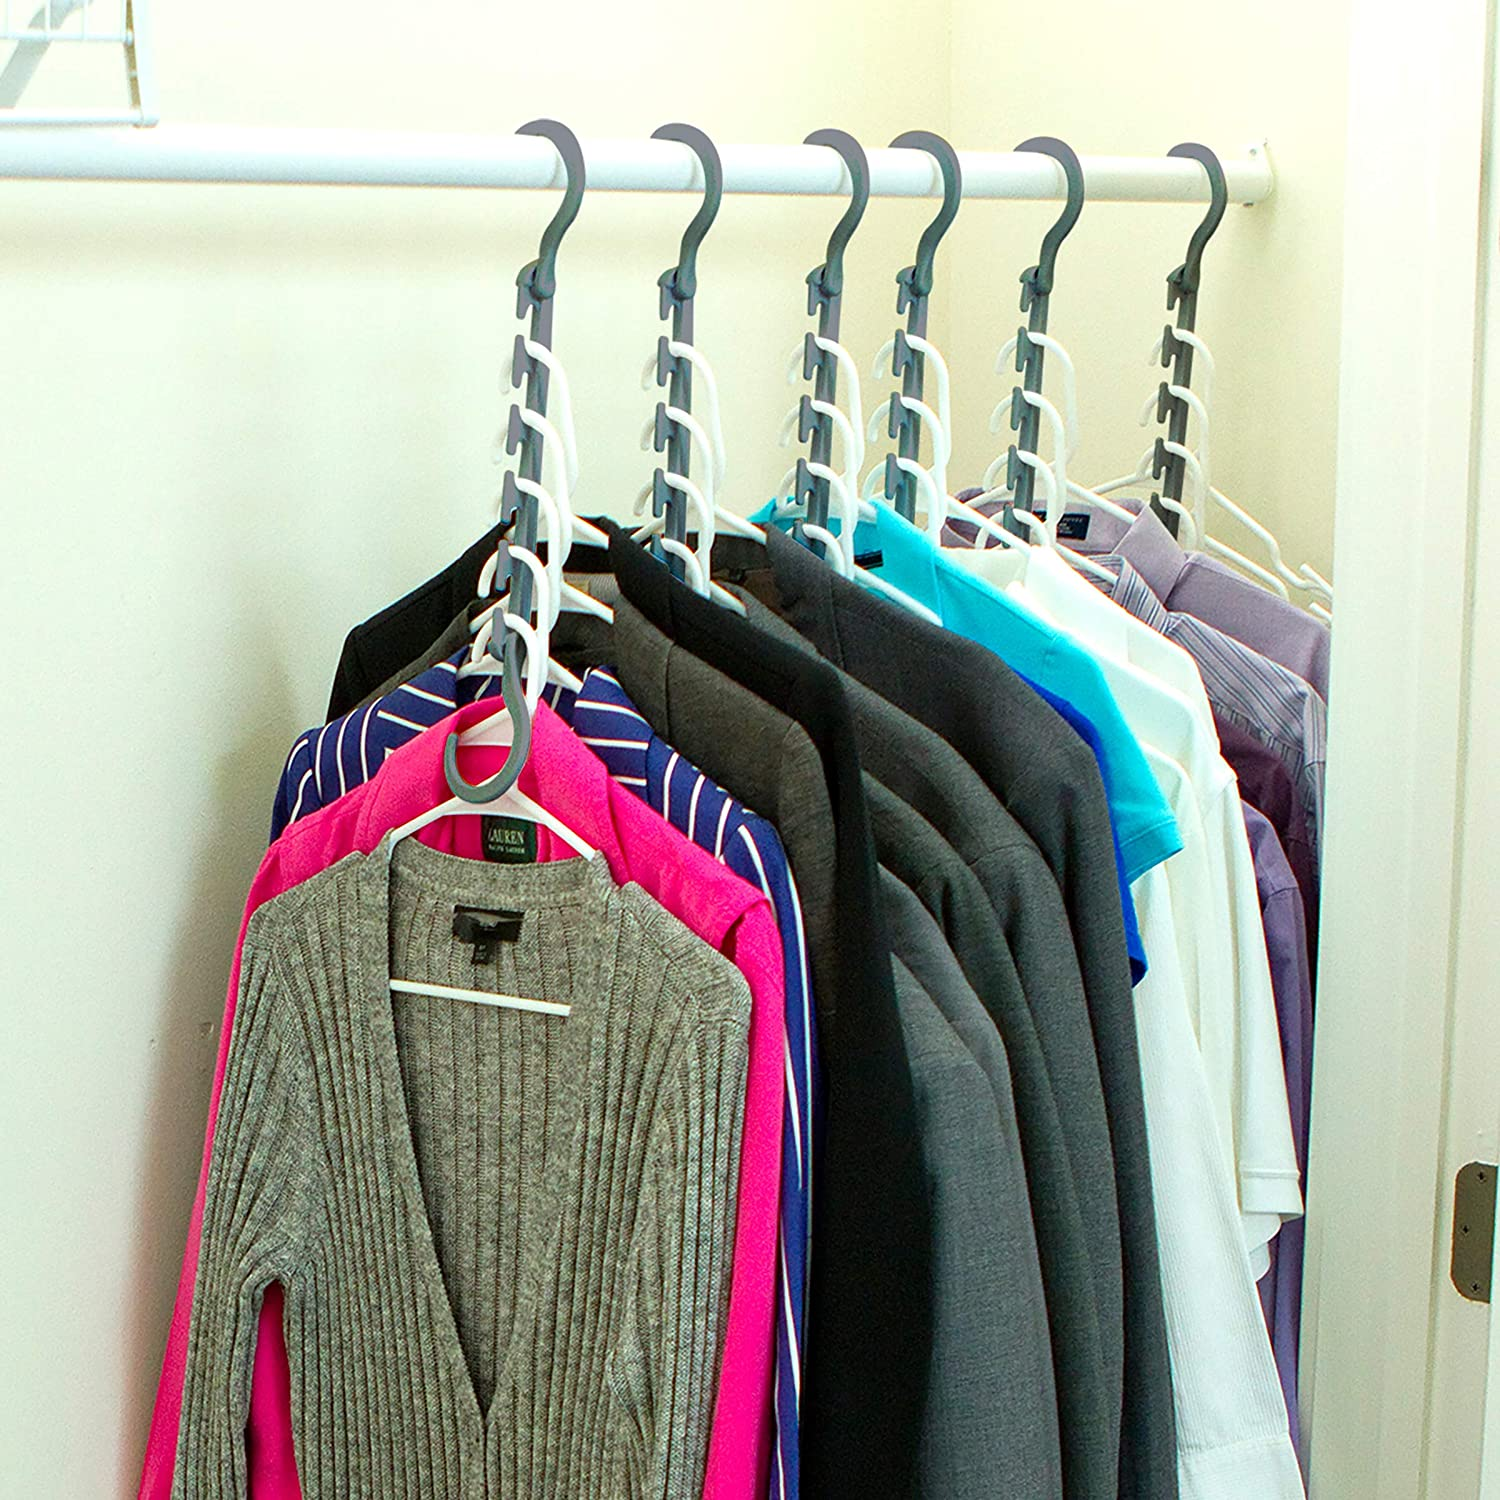 Pack of 8- Triple The Closet Space for Easy Comes Fully Assembled Grey Wonder Hanger Max New /& Improved Effortless Wrinkle-Free Clothes